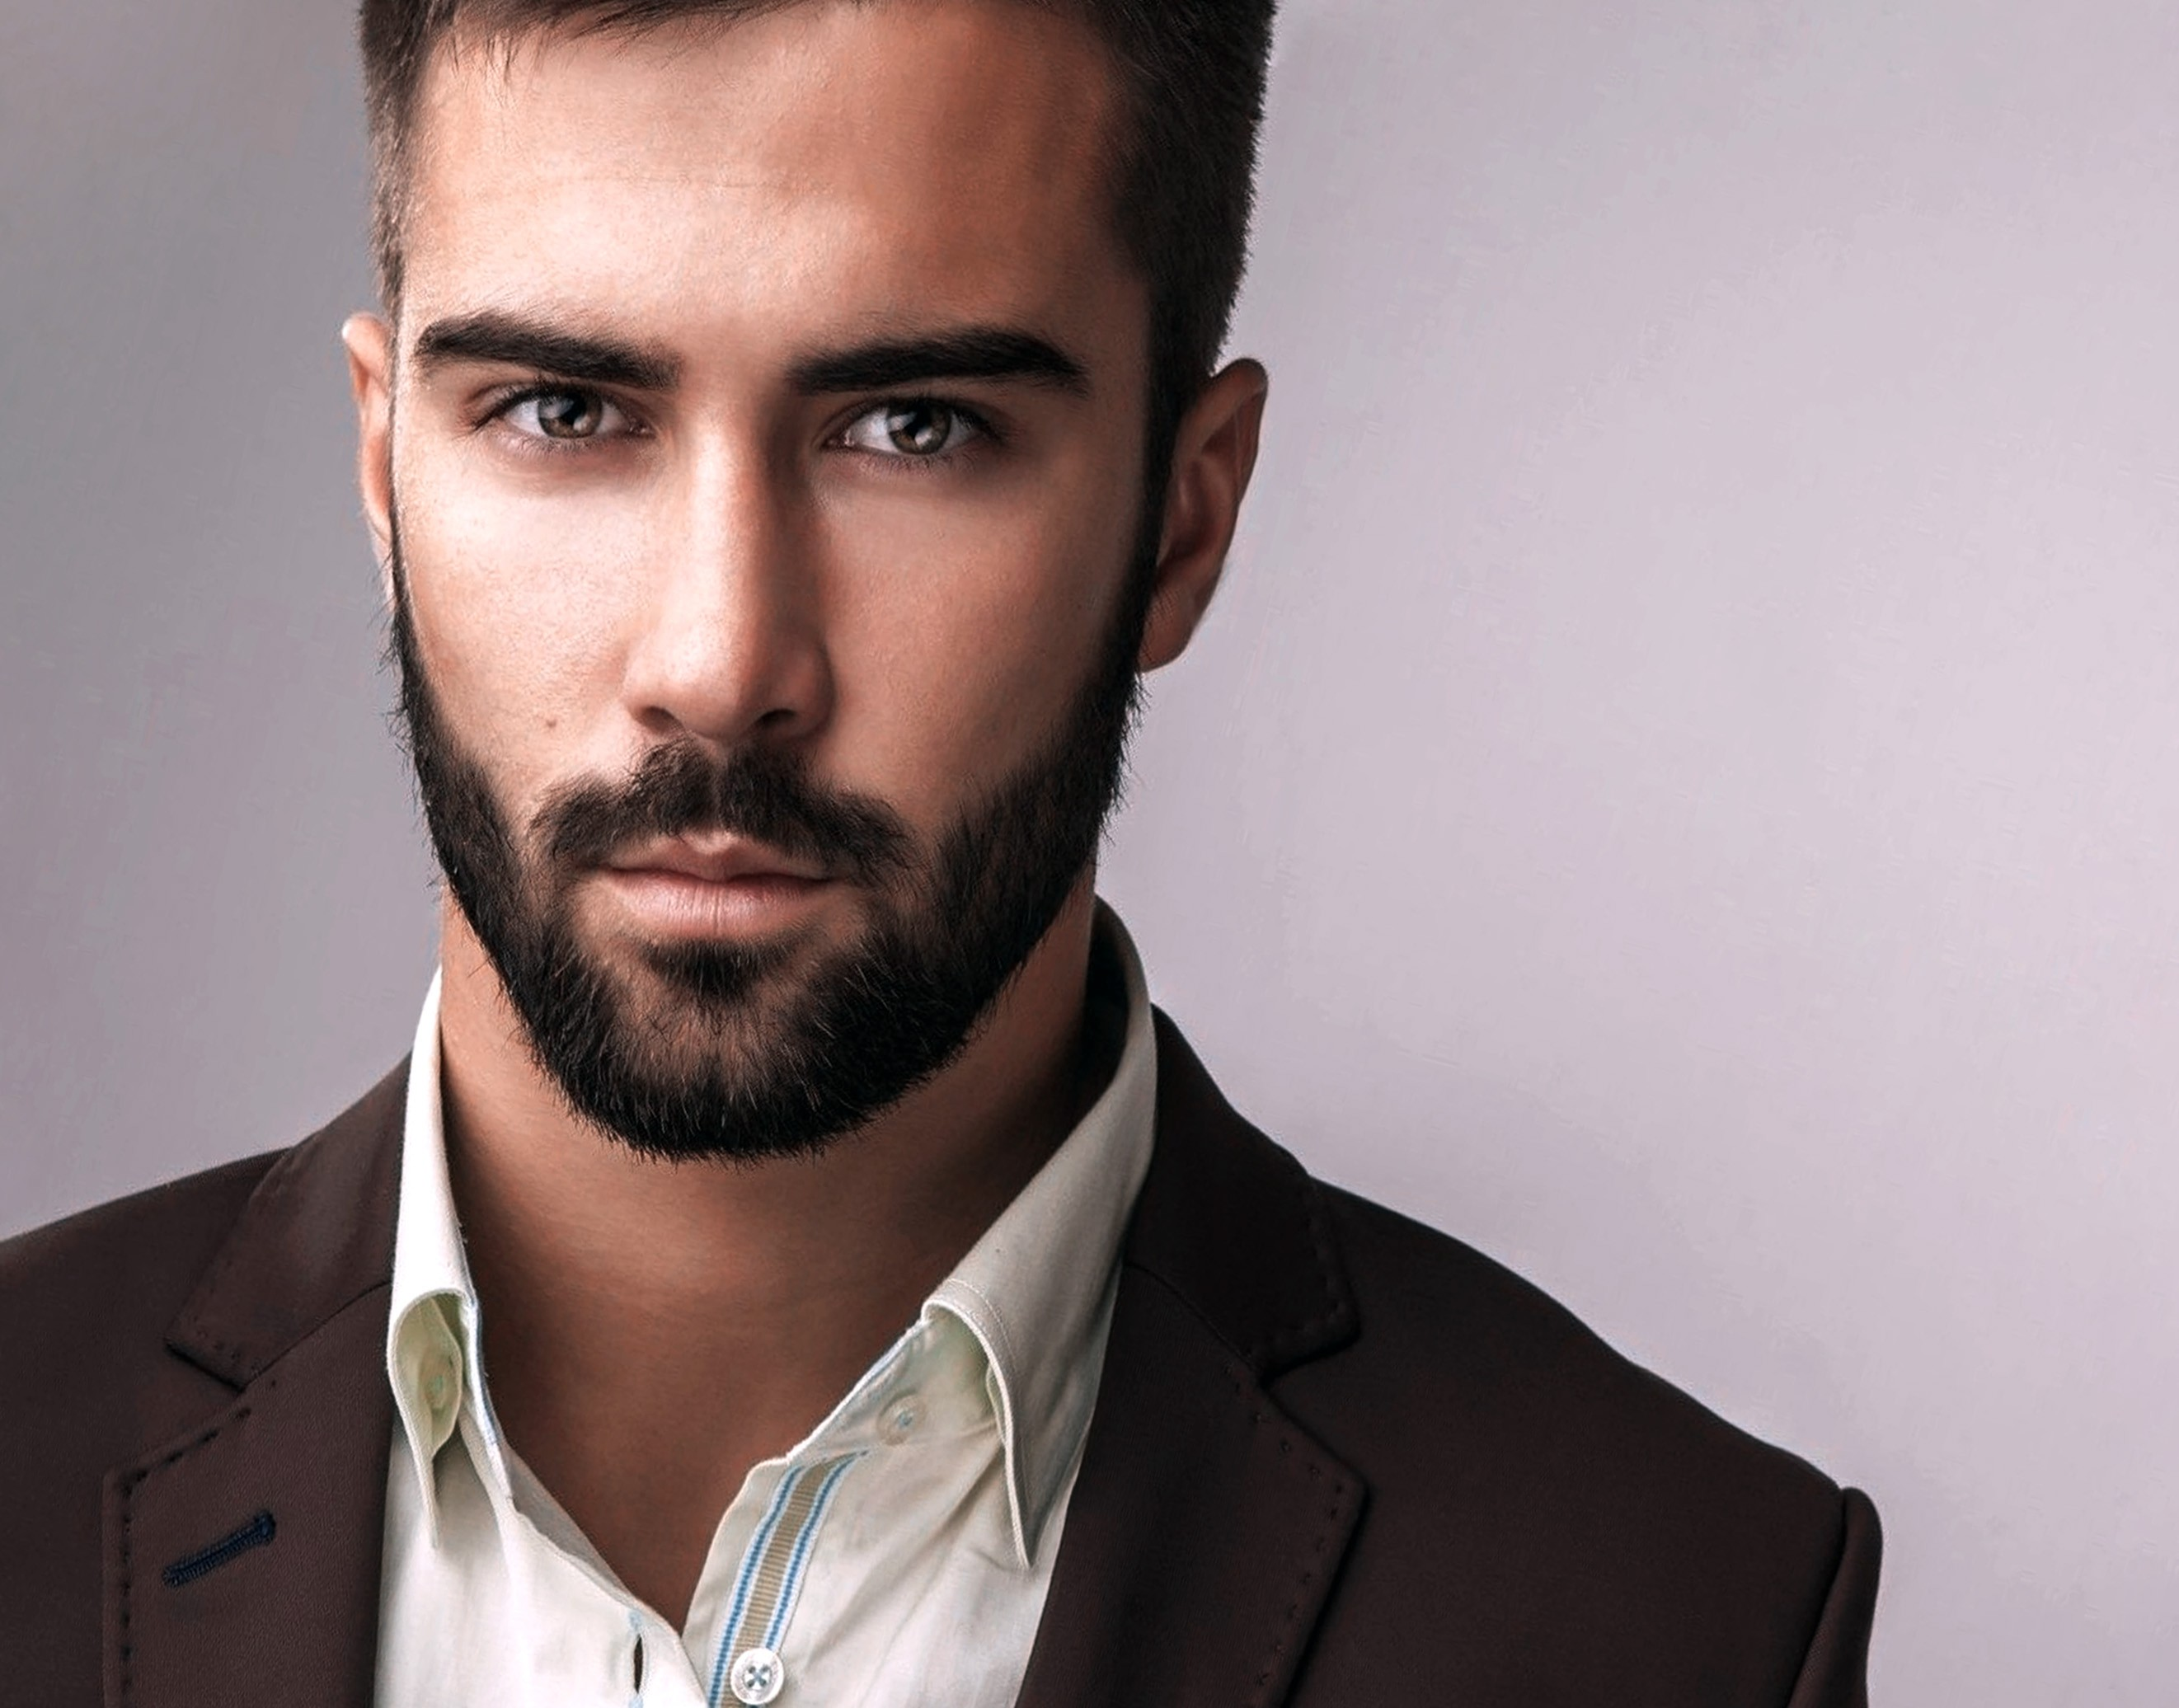 A short beard for men with a round face.